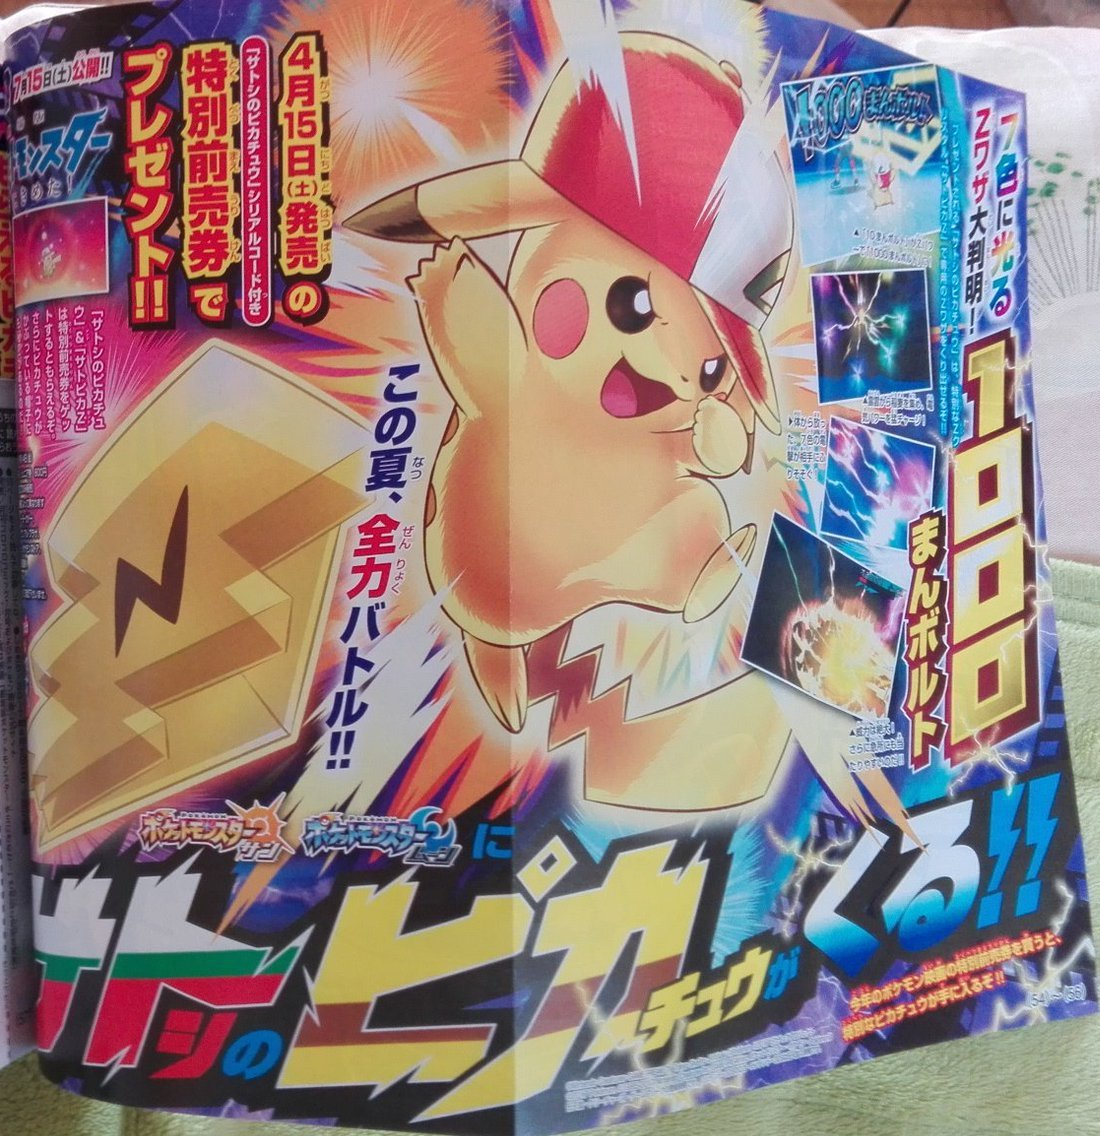 db6add57c1026 Japan - Pokemon Sun Moon getting Ash Hat Pikachu distribution in  conjunction with upcoming movie